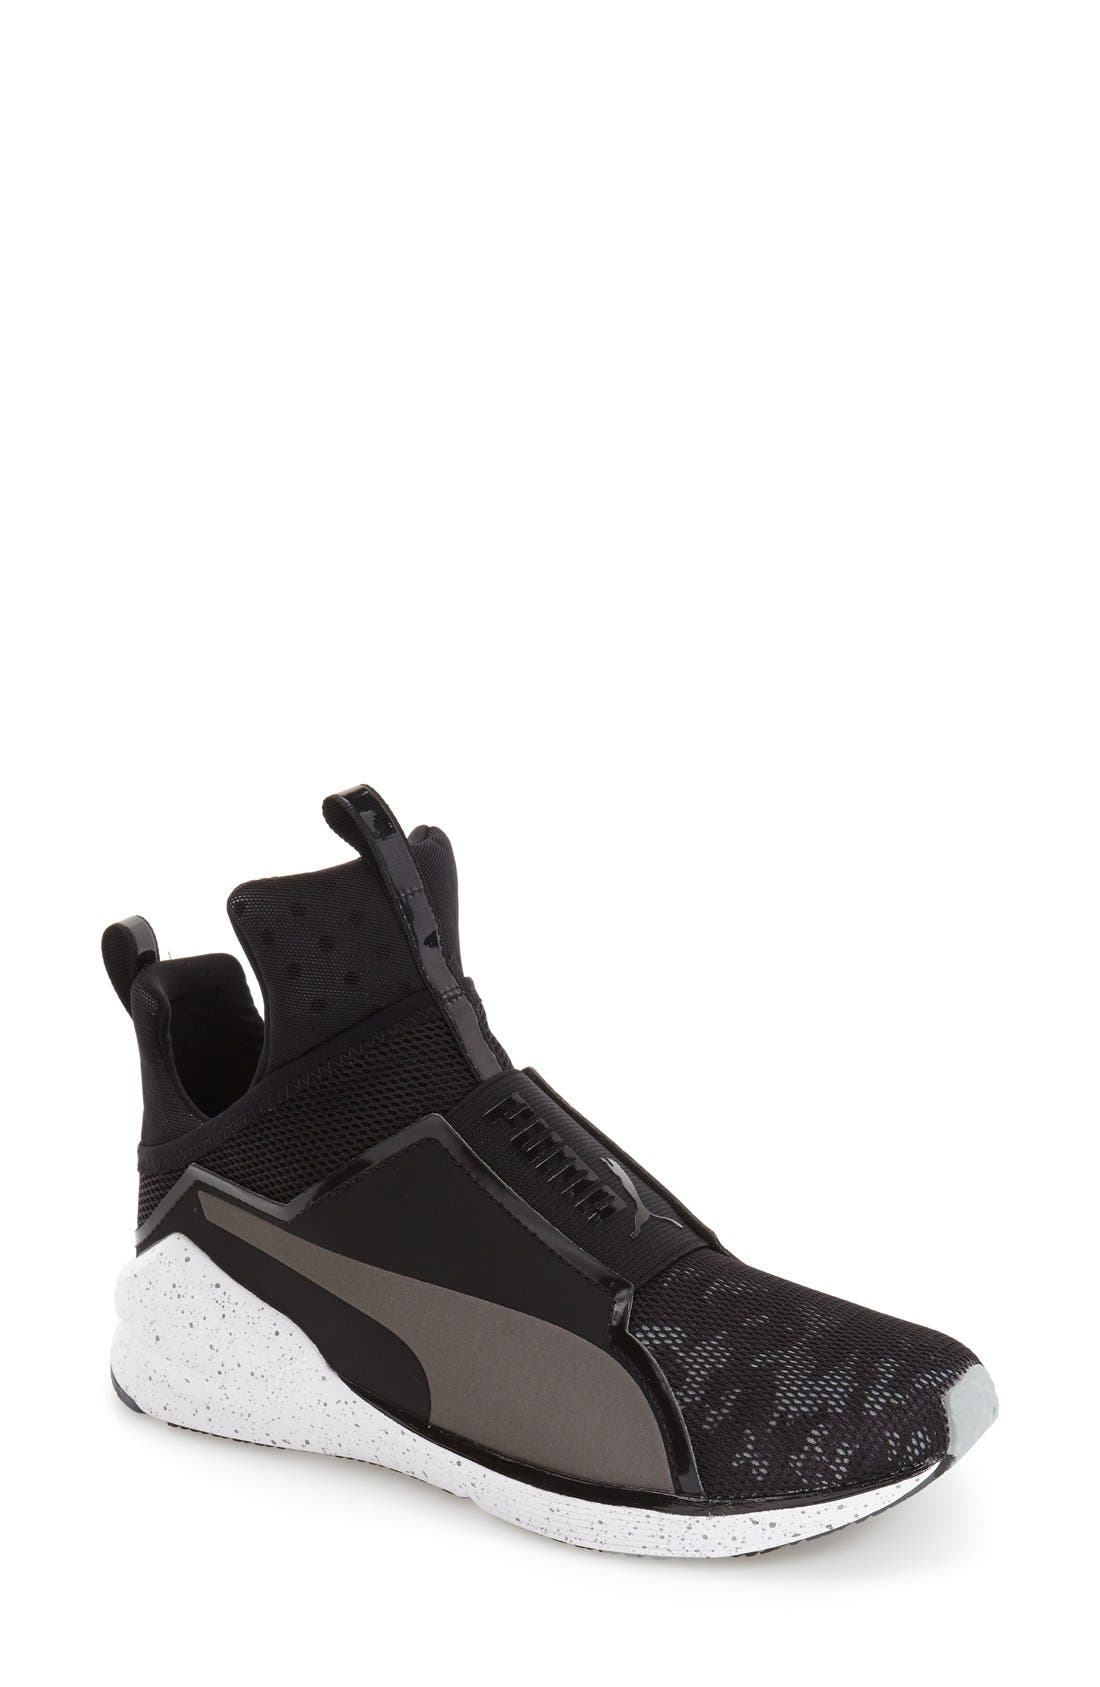 Main Image - PUMA 'Fierce Camo' Training Sneaker (Women)